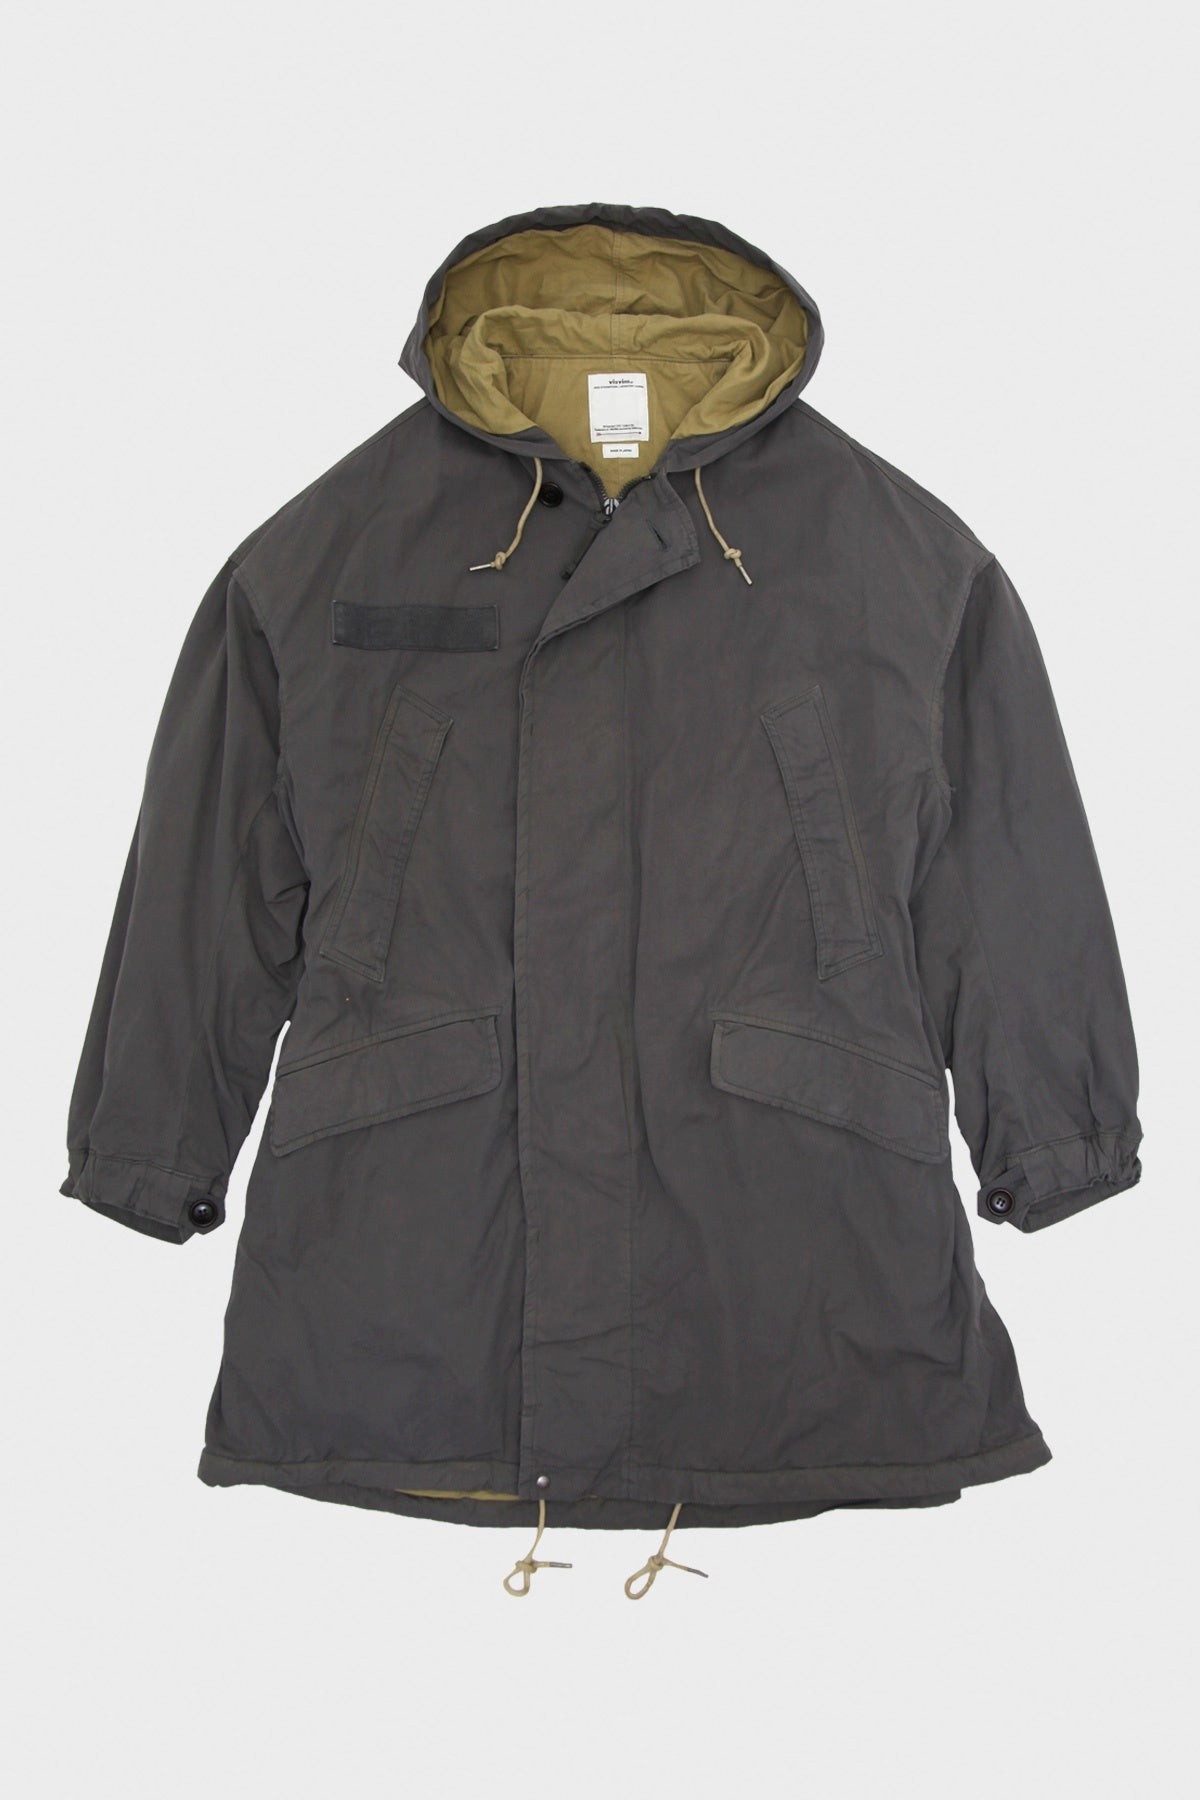 Visvim - Patterson Overcoat (C/NY) - Grey - Canoe Club